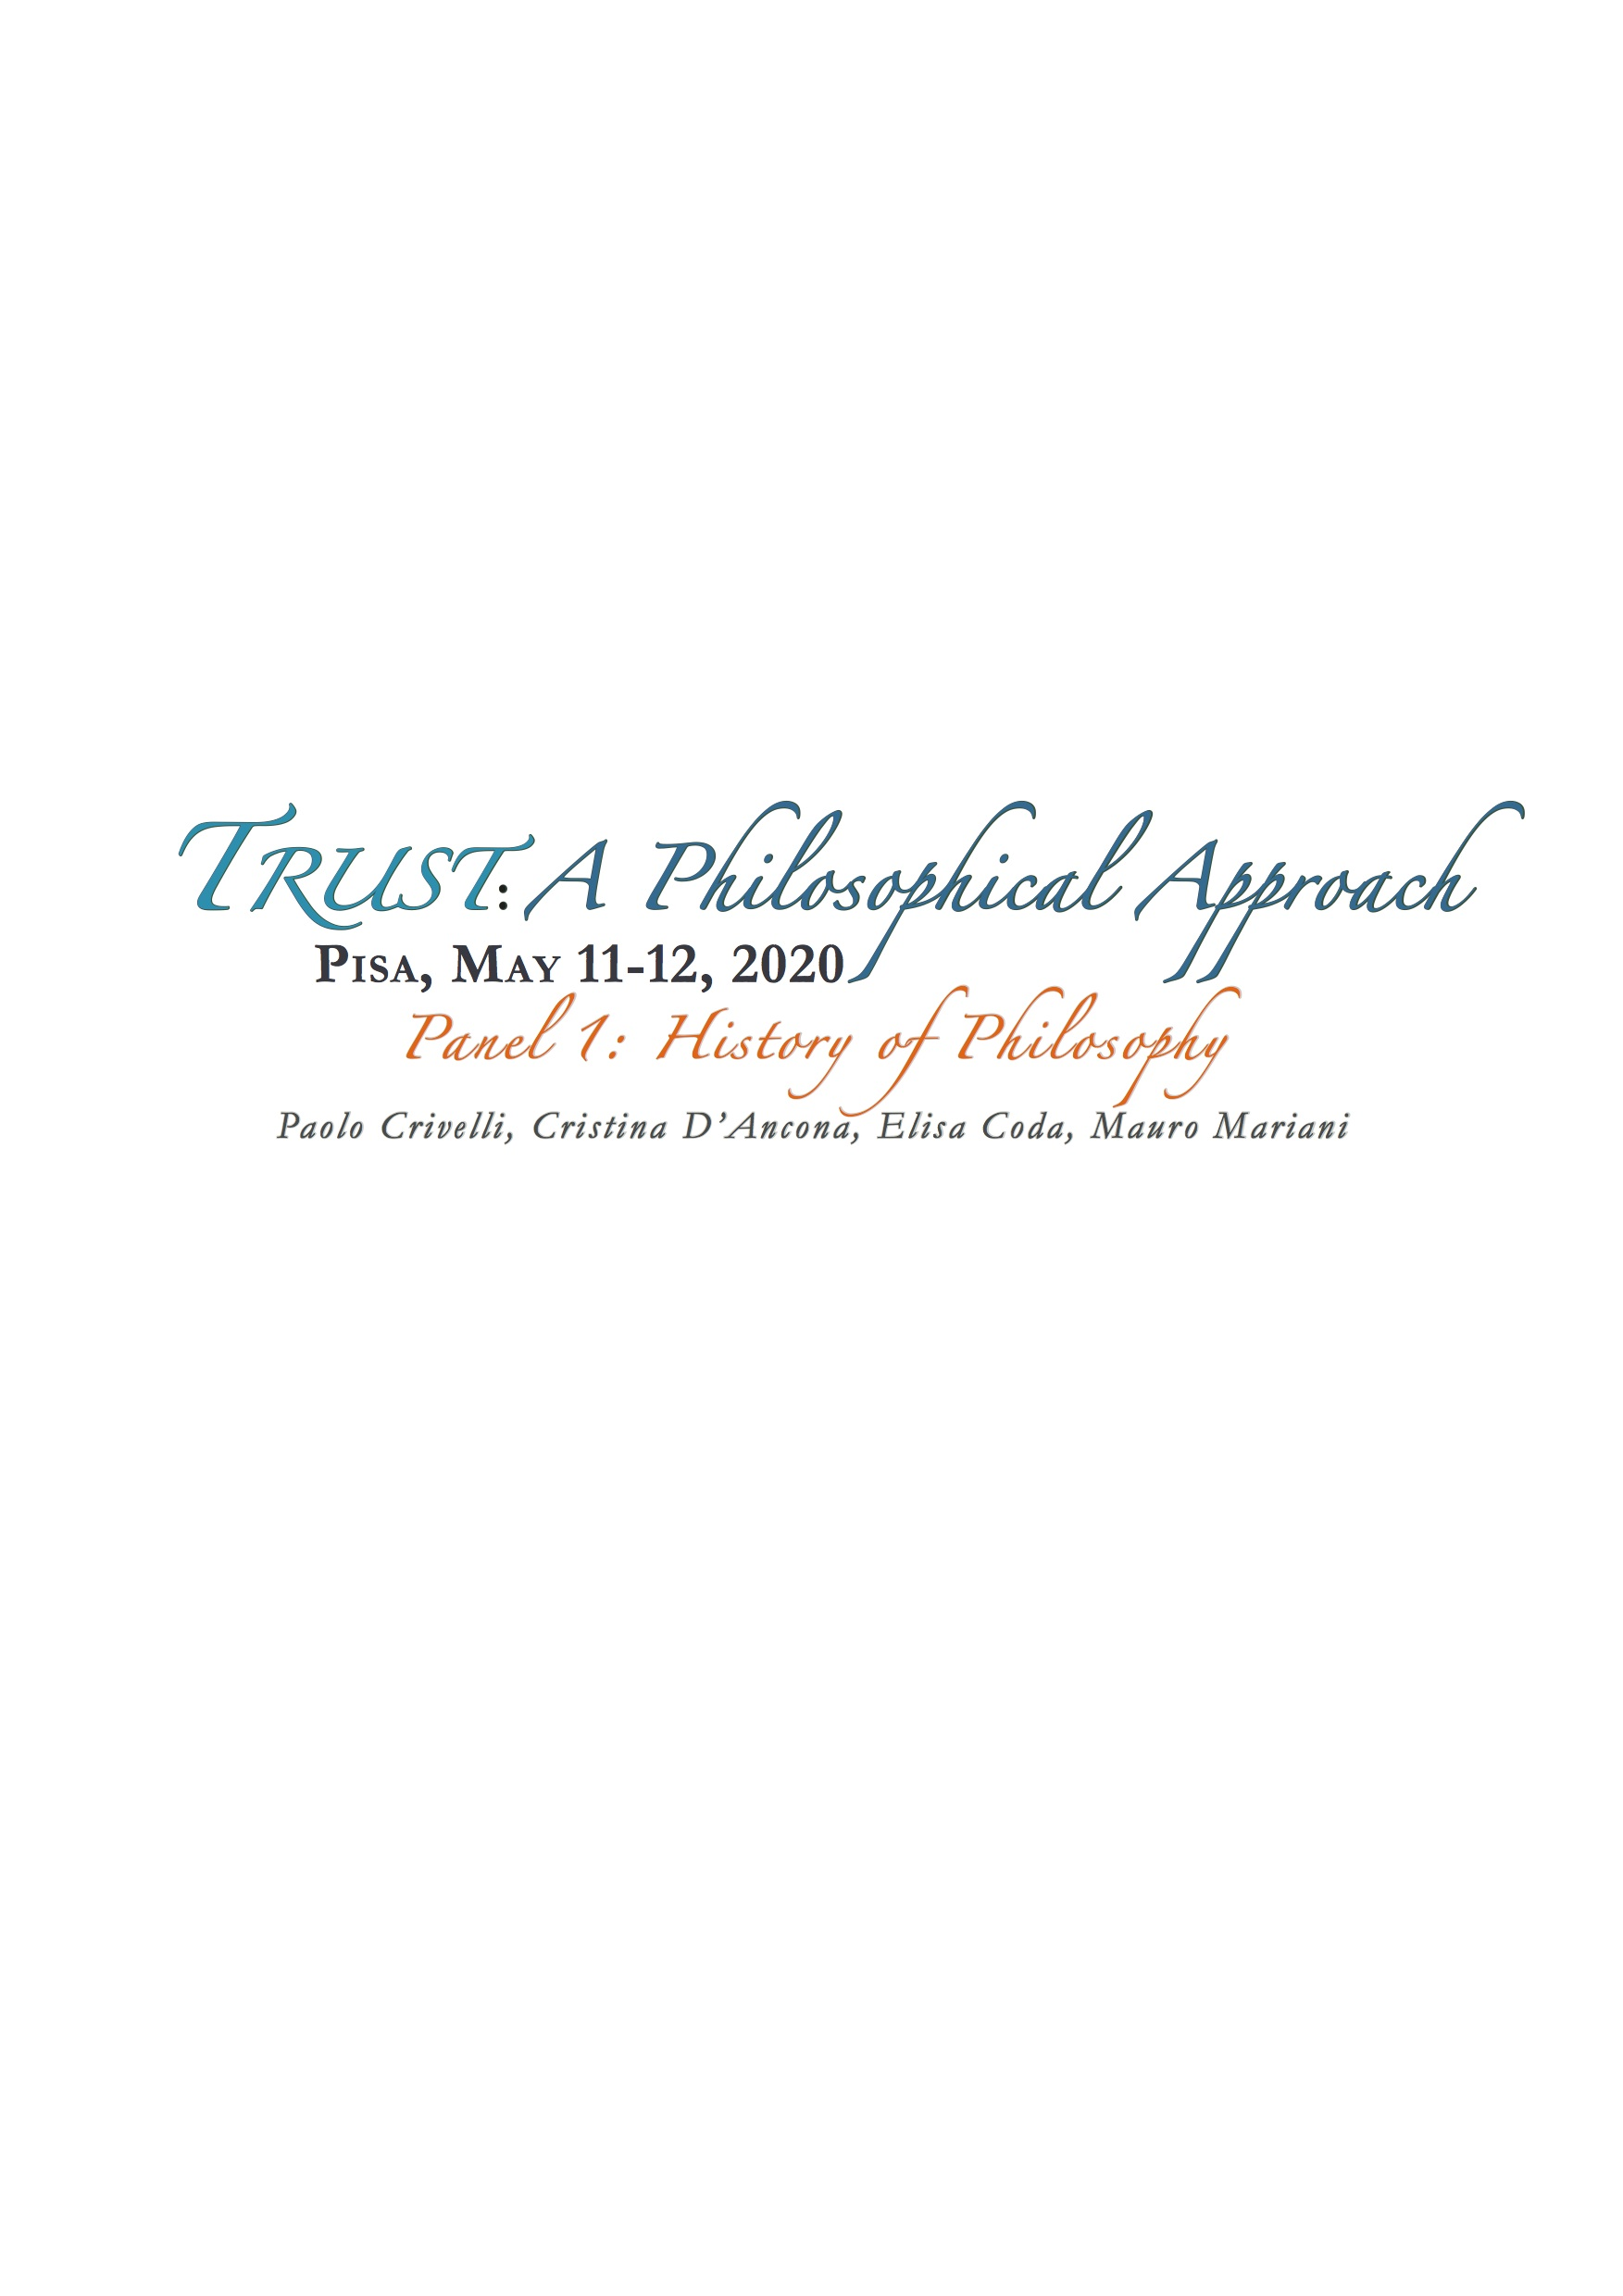 TRUST: A PHILOSOPHICAL APPROACH - PANEL 1